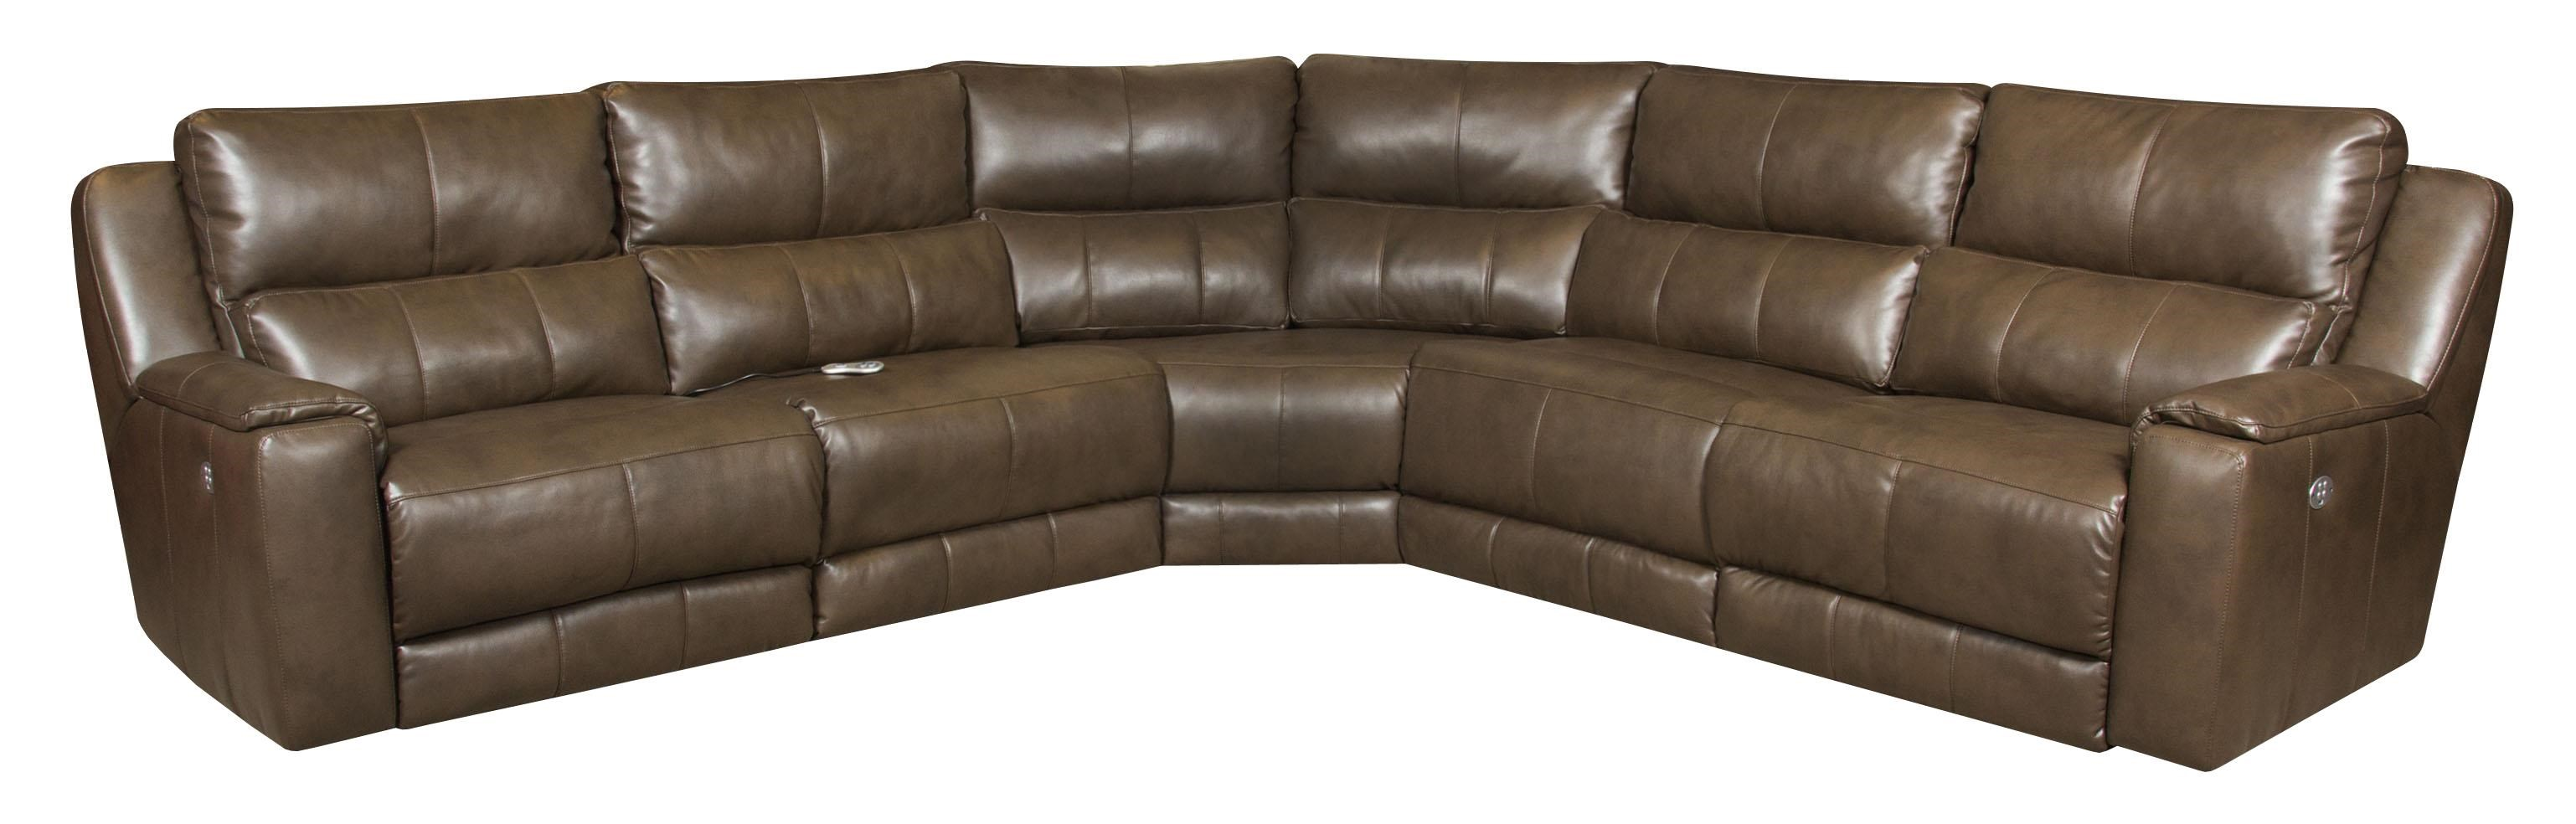 Southern Motion Dazzle Reclining Sectional Sofa with 5  : dazzle20883p883 05p90p8490p06p 243 21 b1jpgscalebothampwidth500ampheight500ampfsharpen25ampdown from www.wayside-furniture.com size 500 x 500 jpeg 19kB